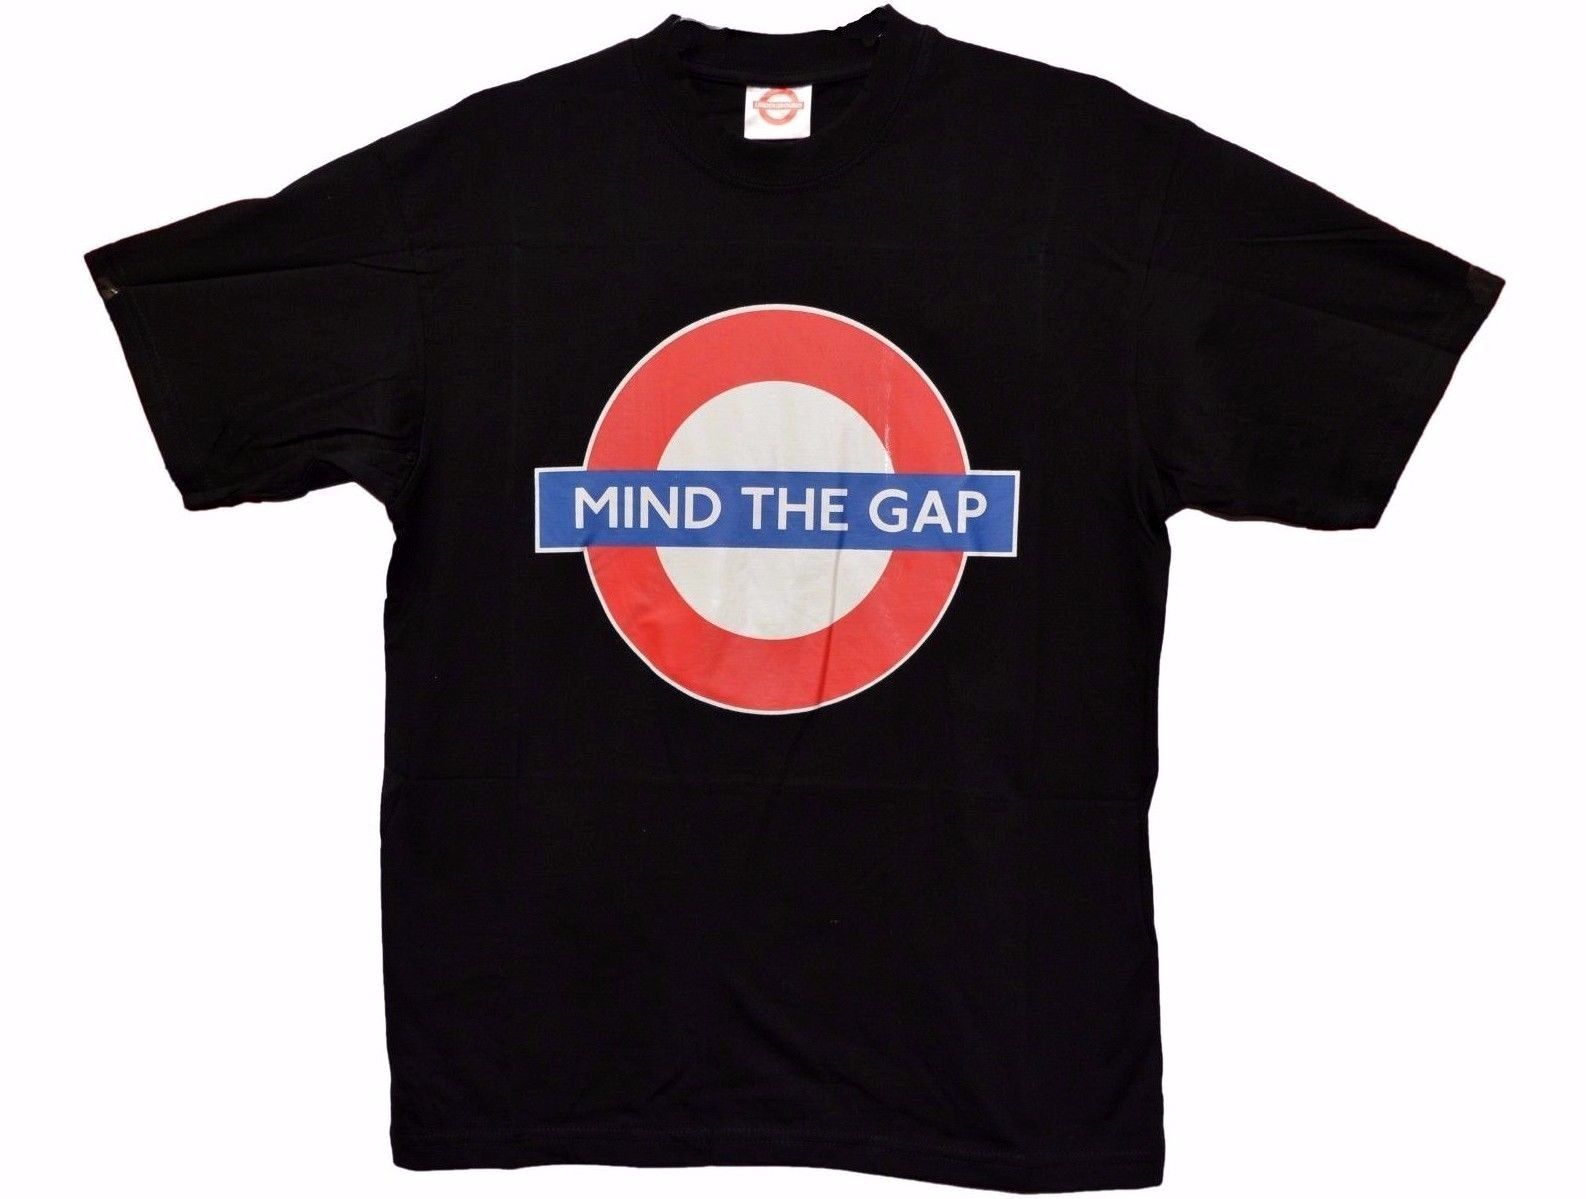 f35a79091b6d0e Aliexpress.com : Buy Shirt London Underground Mind The Gap Roundel Logo  Black T shirt Souvenir Gift from Reliable T-Shirts suppliers on Shop4565039  Store